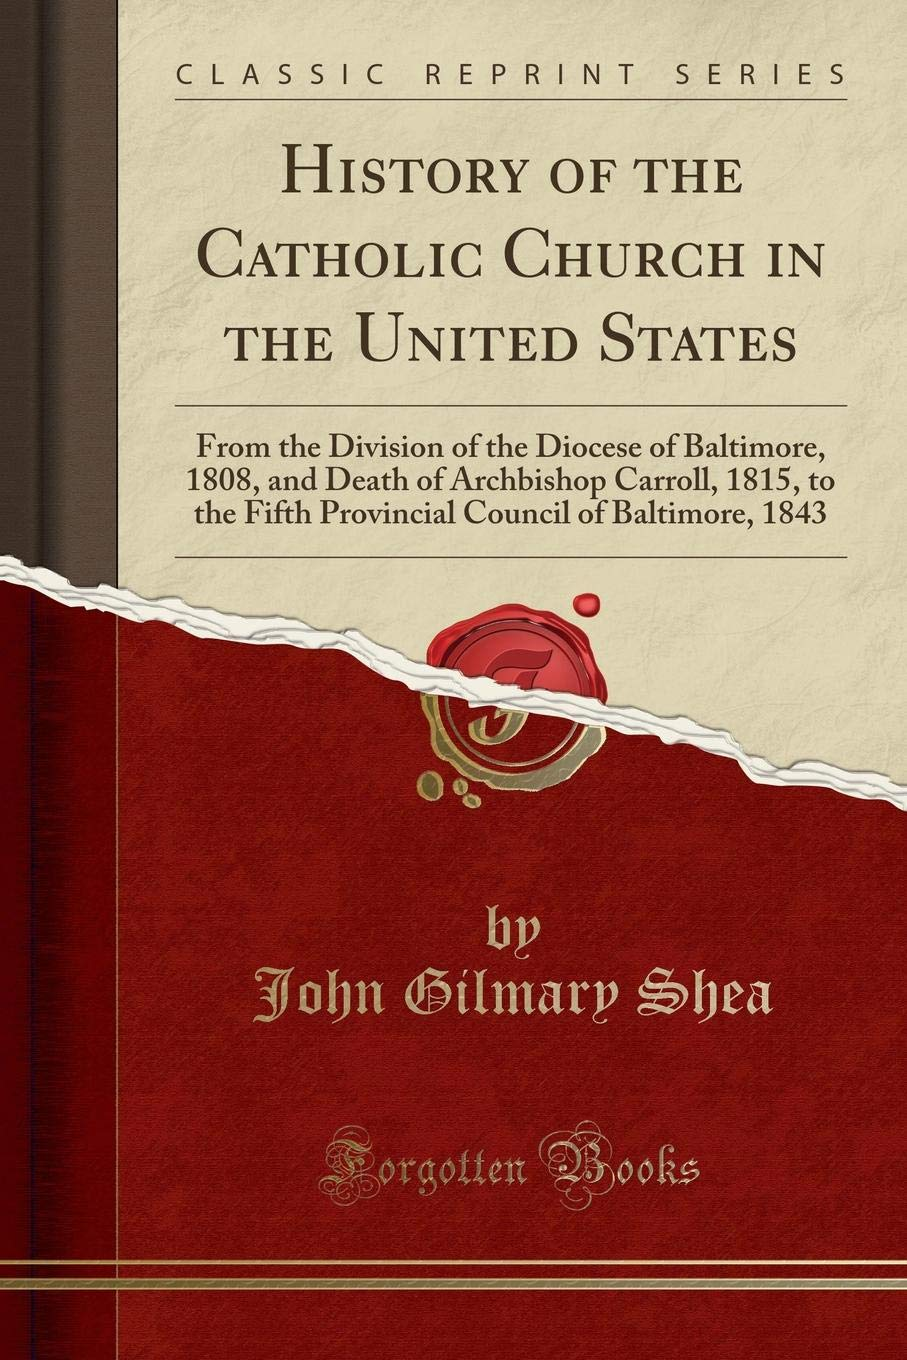 History of the Catholic Church in the United States: From the Division of the Diocese of Baltimore, 1808, and Death of Archbishop Carroll, 1815, to ... Council of Baltimore, 1843 (Classic Reprint) pdf epub